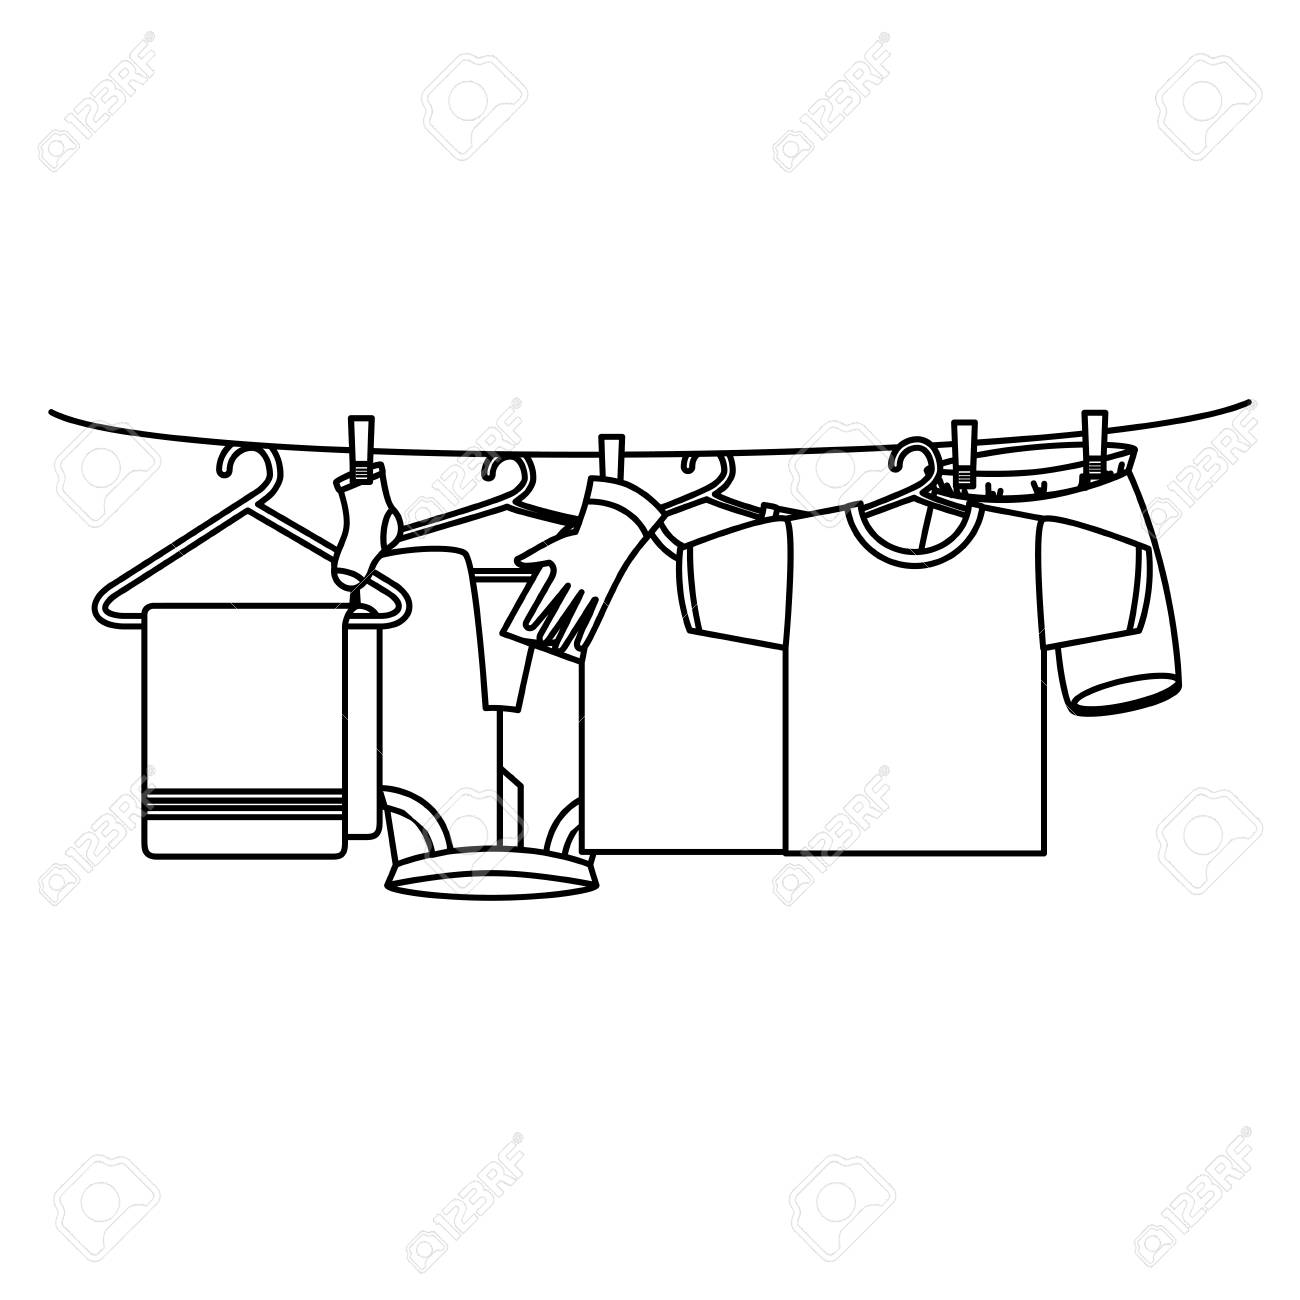 hight resolution of clothes drying on wire vector illustration design stock vector 104046534